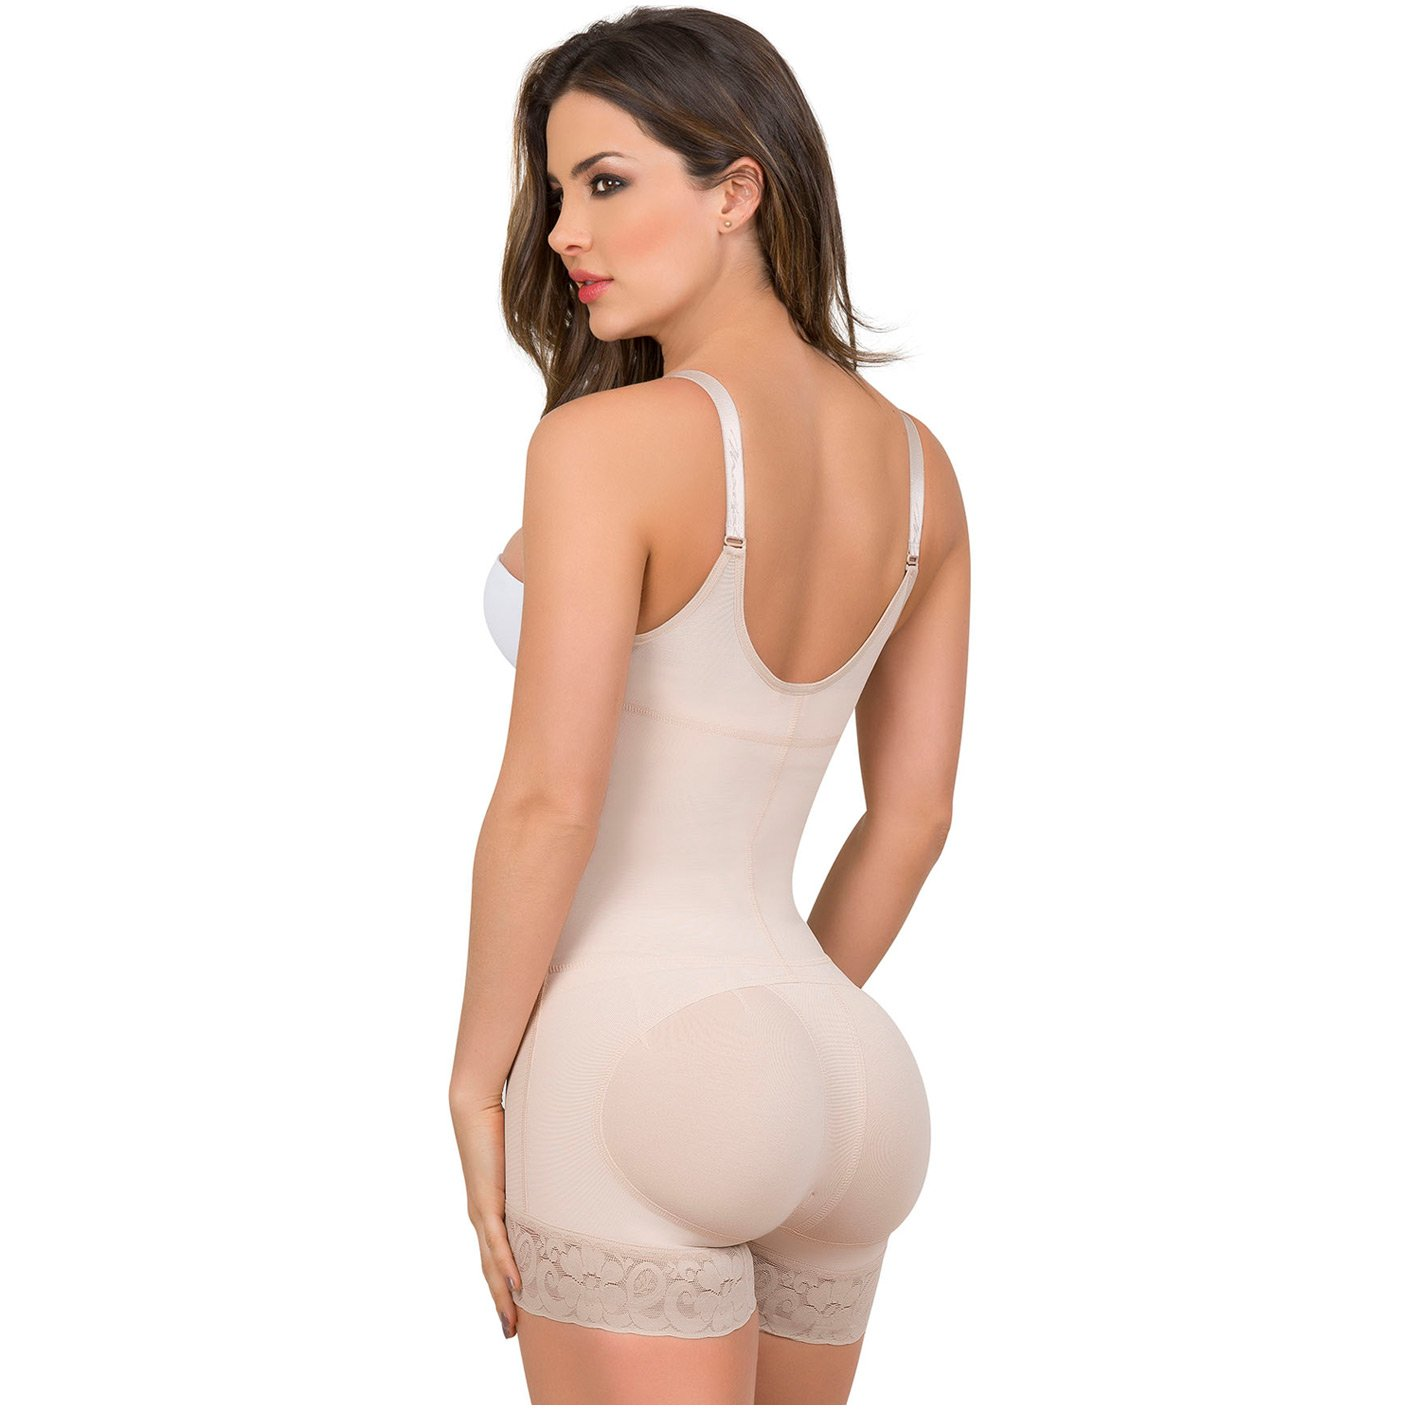 843ce6bc28456 MariaE 9235 Open Bust Shapewear for Women with Front Zipper - Pal Negocio